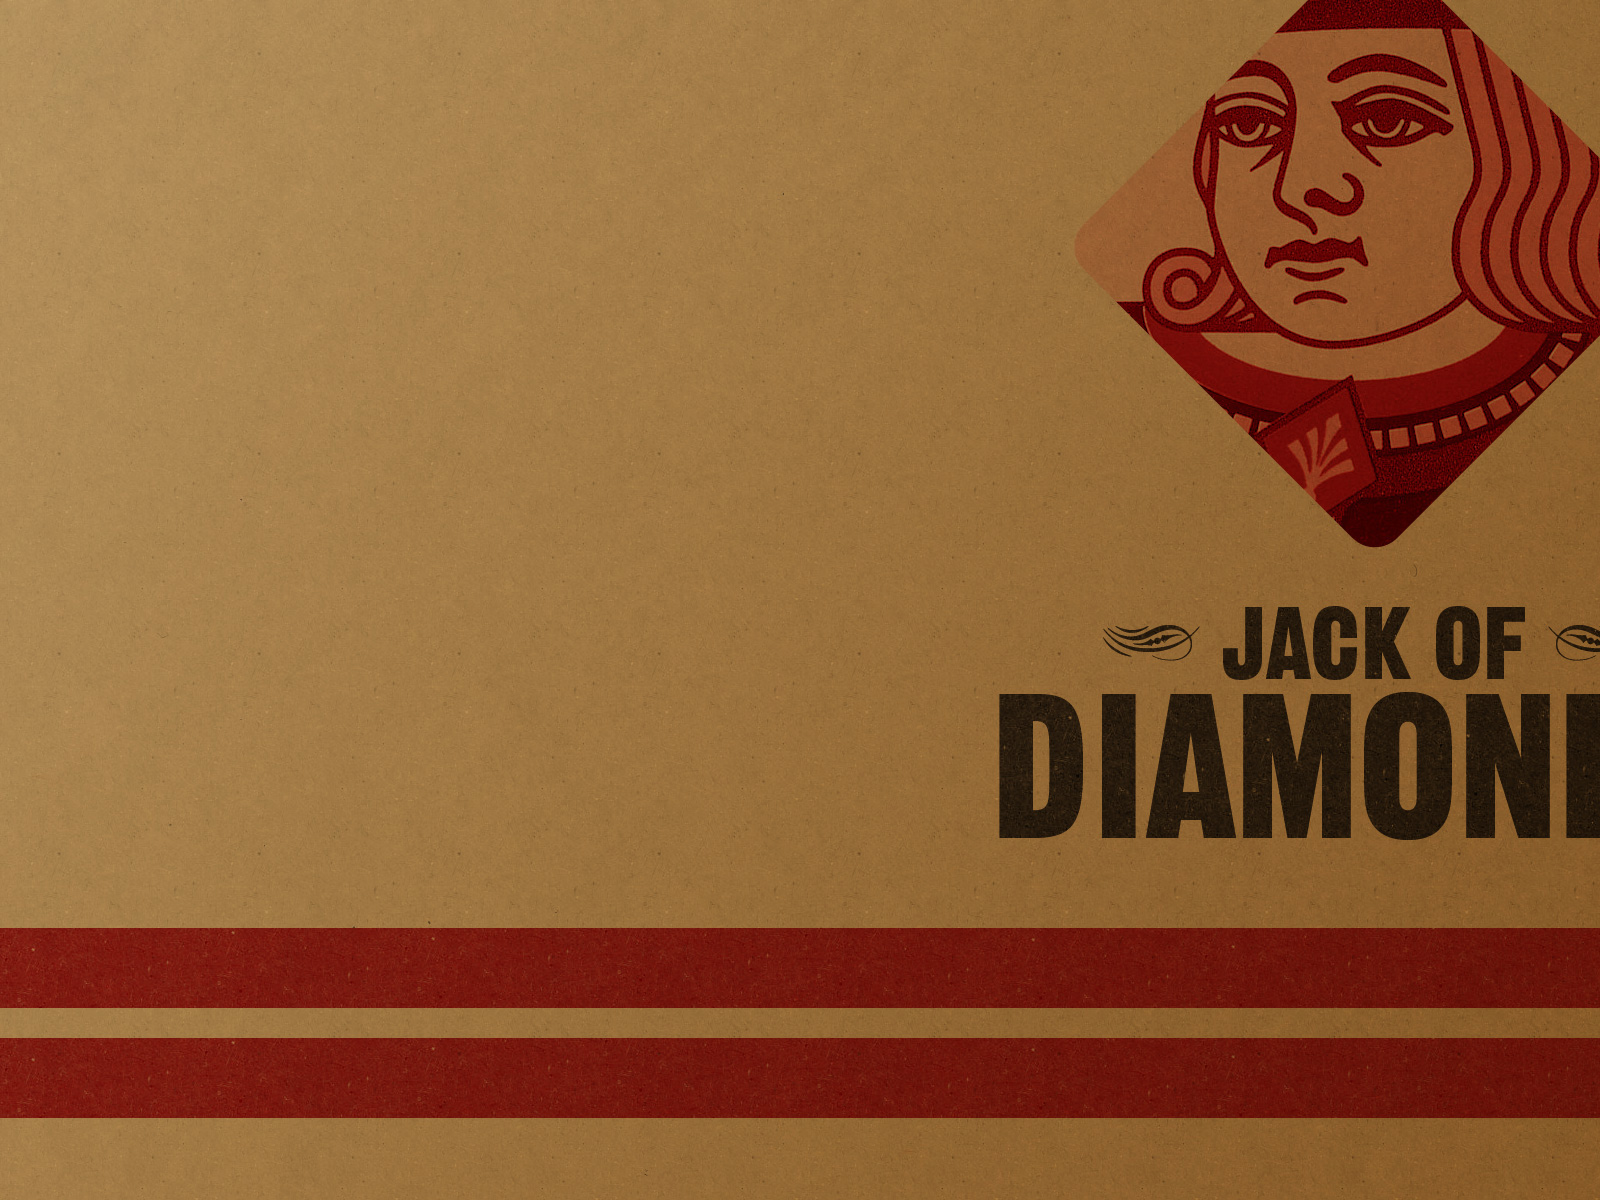 1500x500 Vintage Jack Of Diamonds Twitter Header Photo